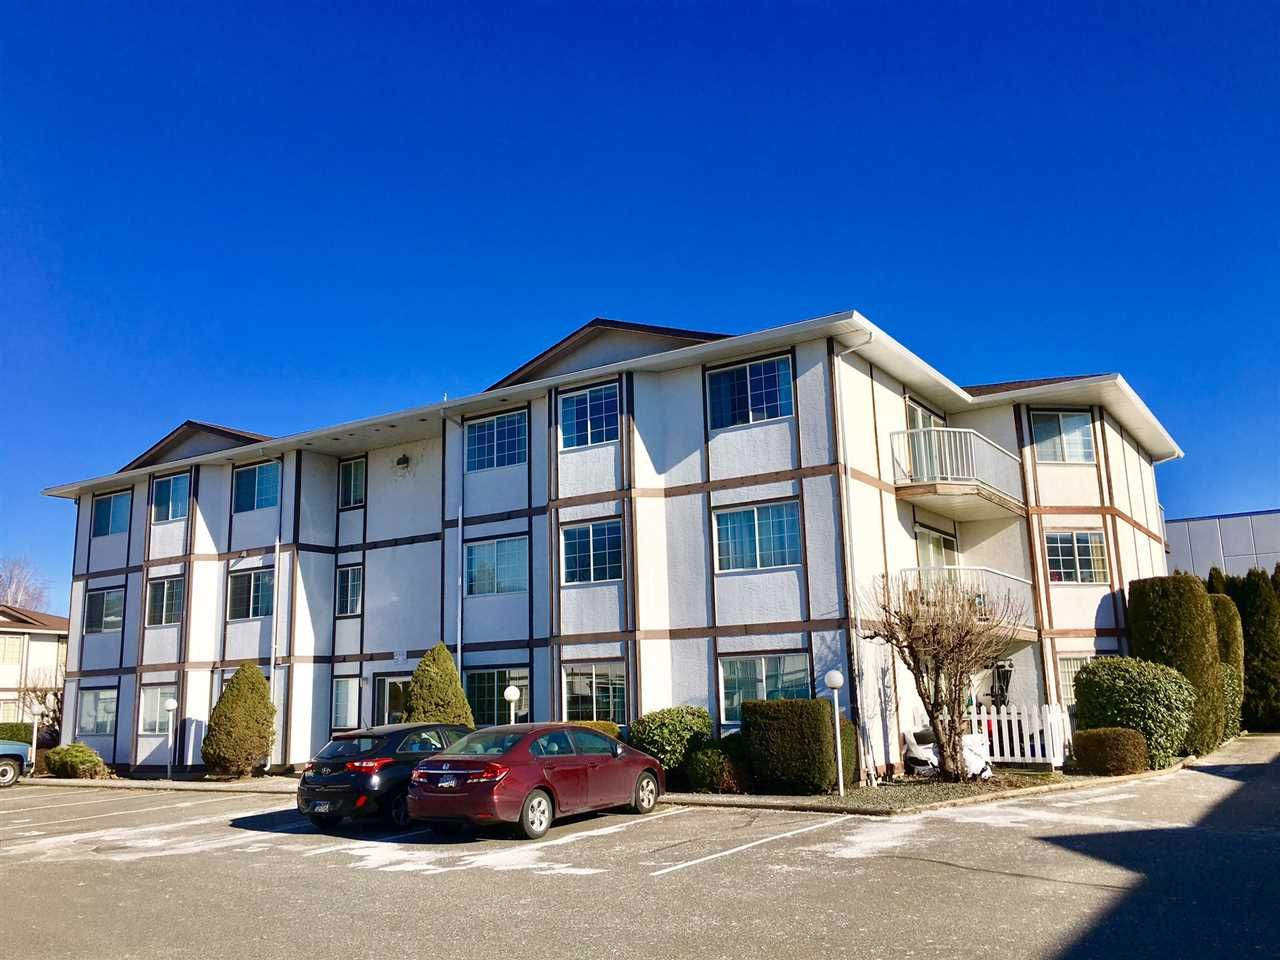 """Main Photo: 302C 45655 MCINTOSH Drive in Chilliwack: Chilliwack W Young-Well Condo for sale in """"McIntosh Place"""" : MLS®# R2338065"""